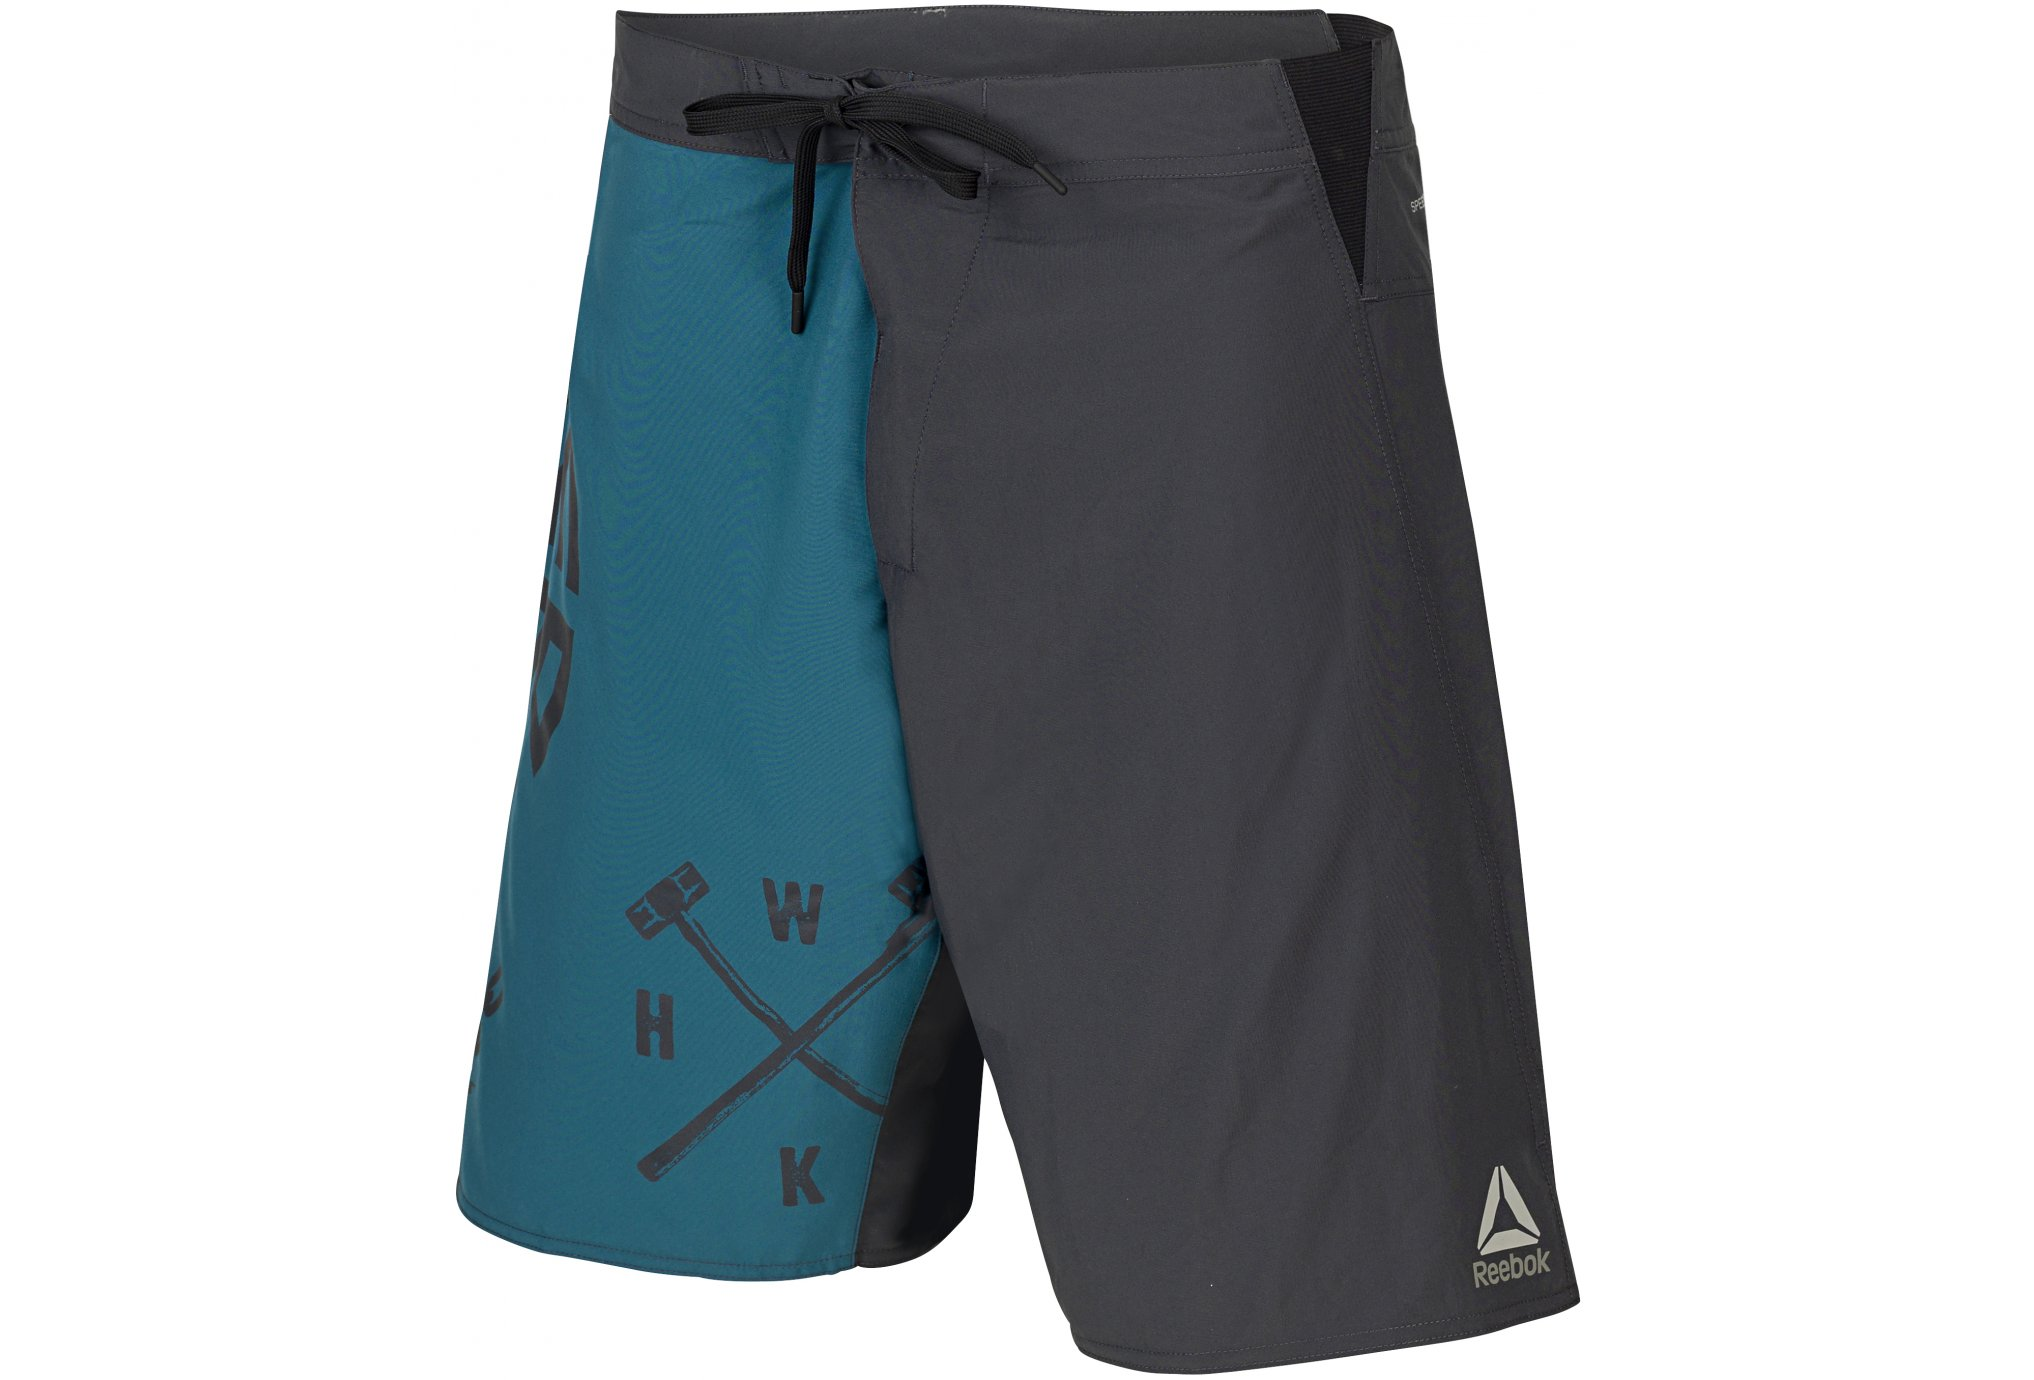 Reebok LightWeight Board Short M vêtement running homme